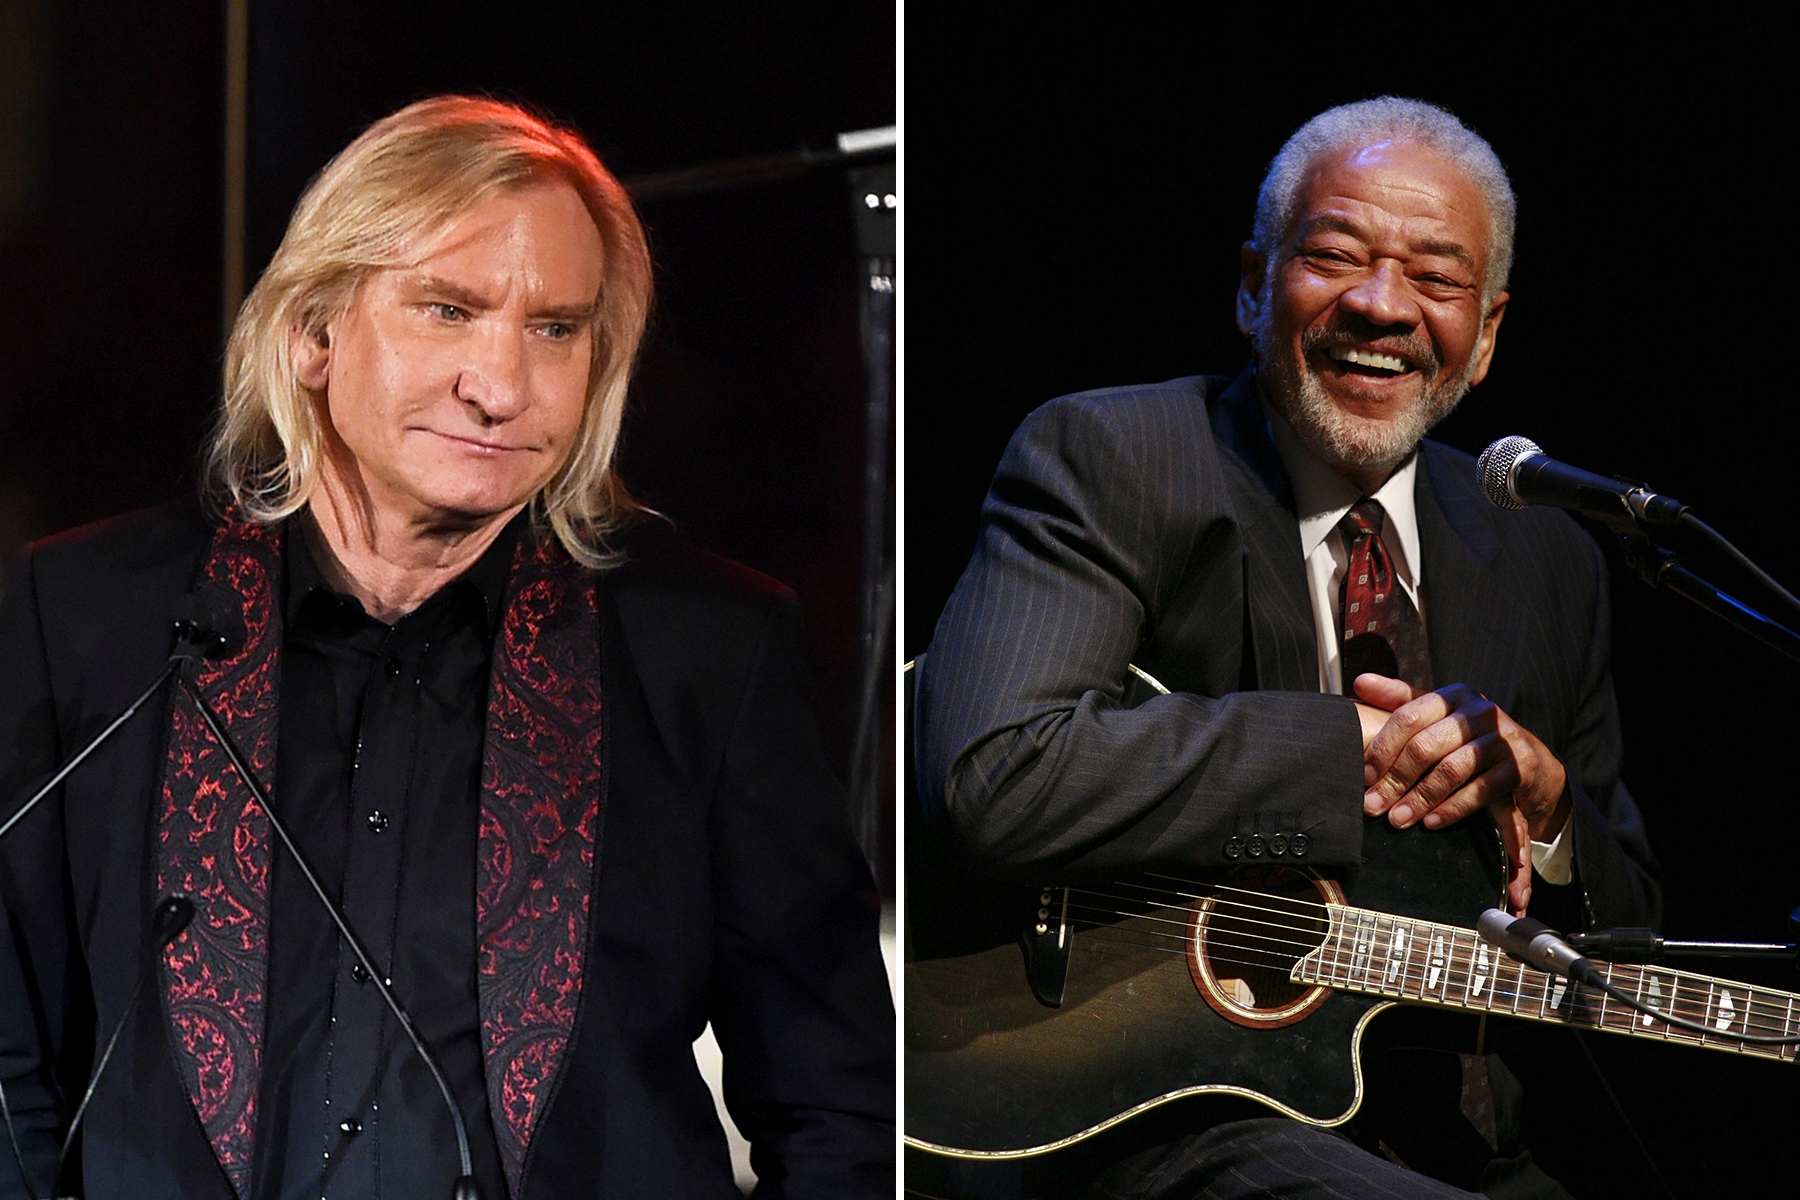 Joe Walsh On Bill Withers He Never Knew How Many Hearts He Touched Rolling Stone Joseph fidler walsh was born on november 20, 1947 in wichita, kansas, but in his youth walsh's dynamic and creative playing featuring his famously catchy guitar riffs made the band memorable. joe walsh on bill withers he never